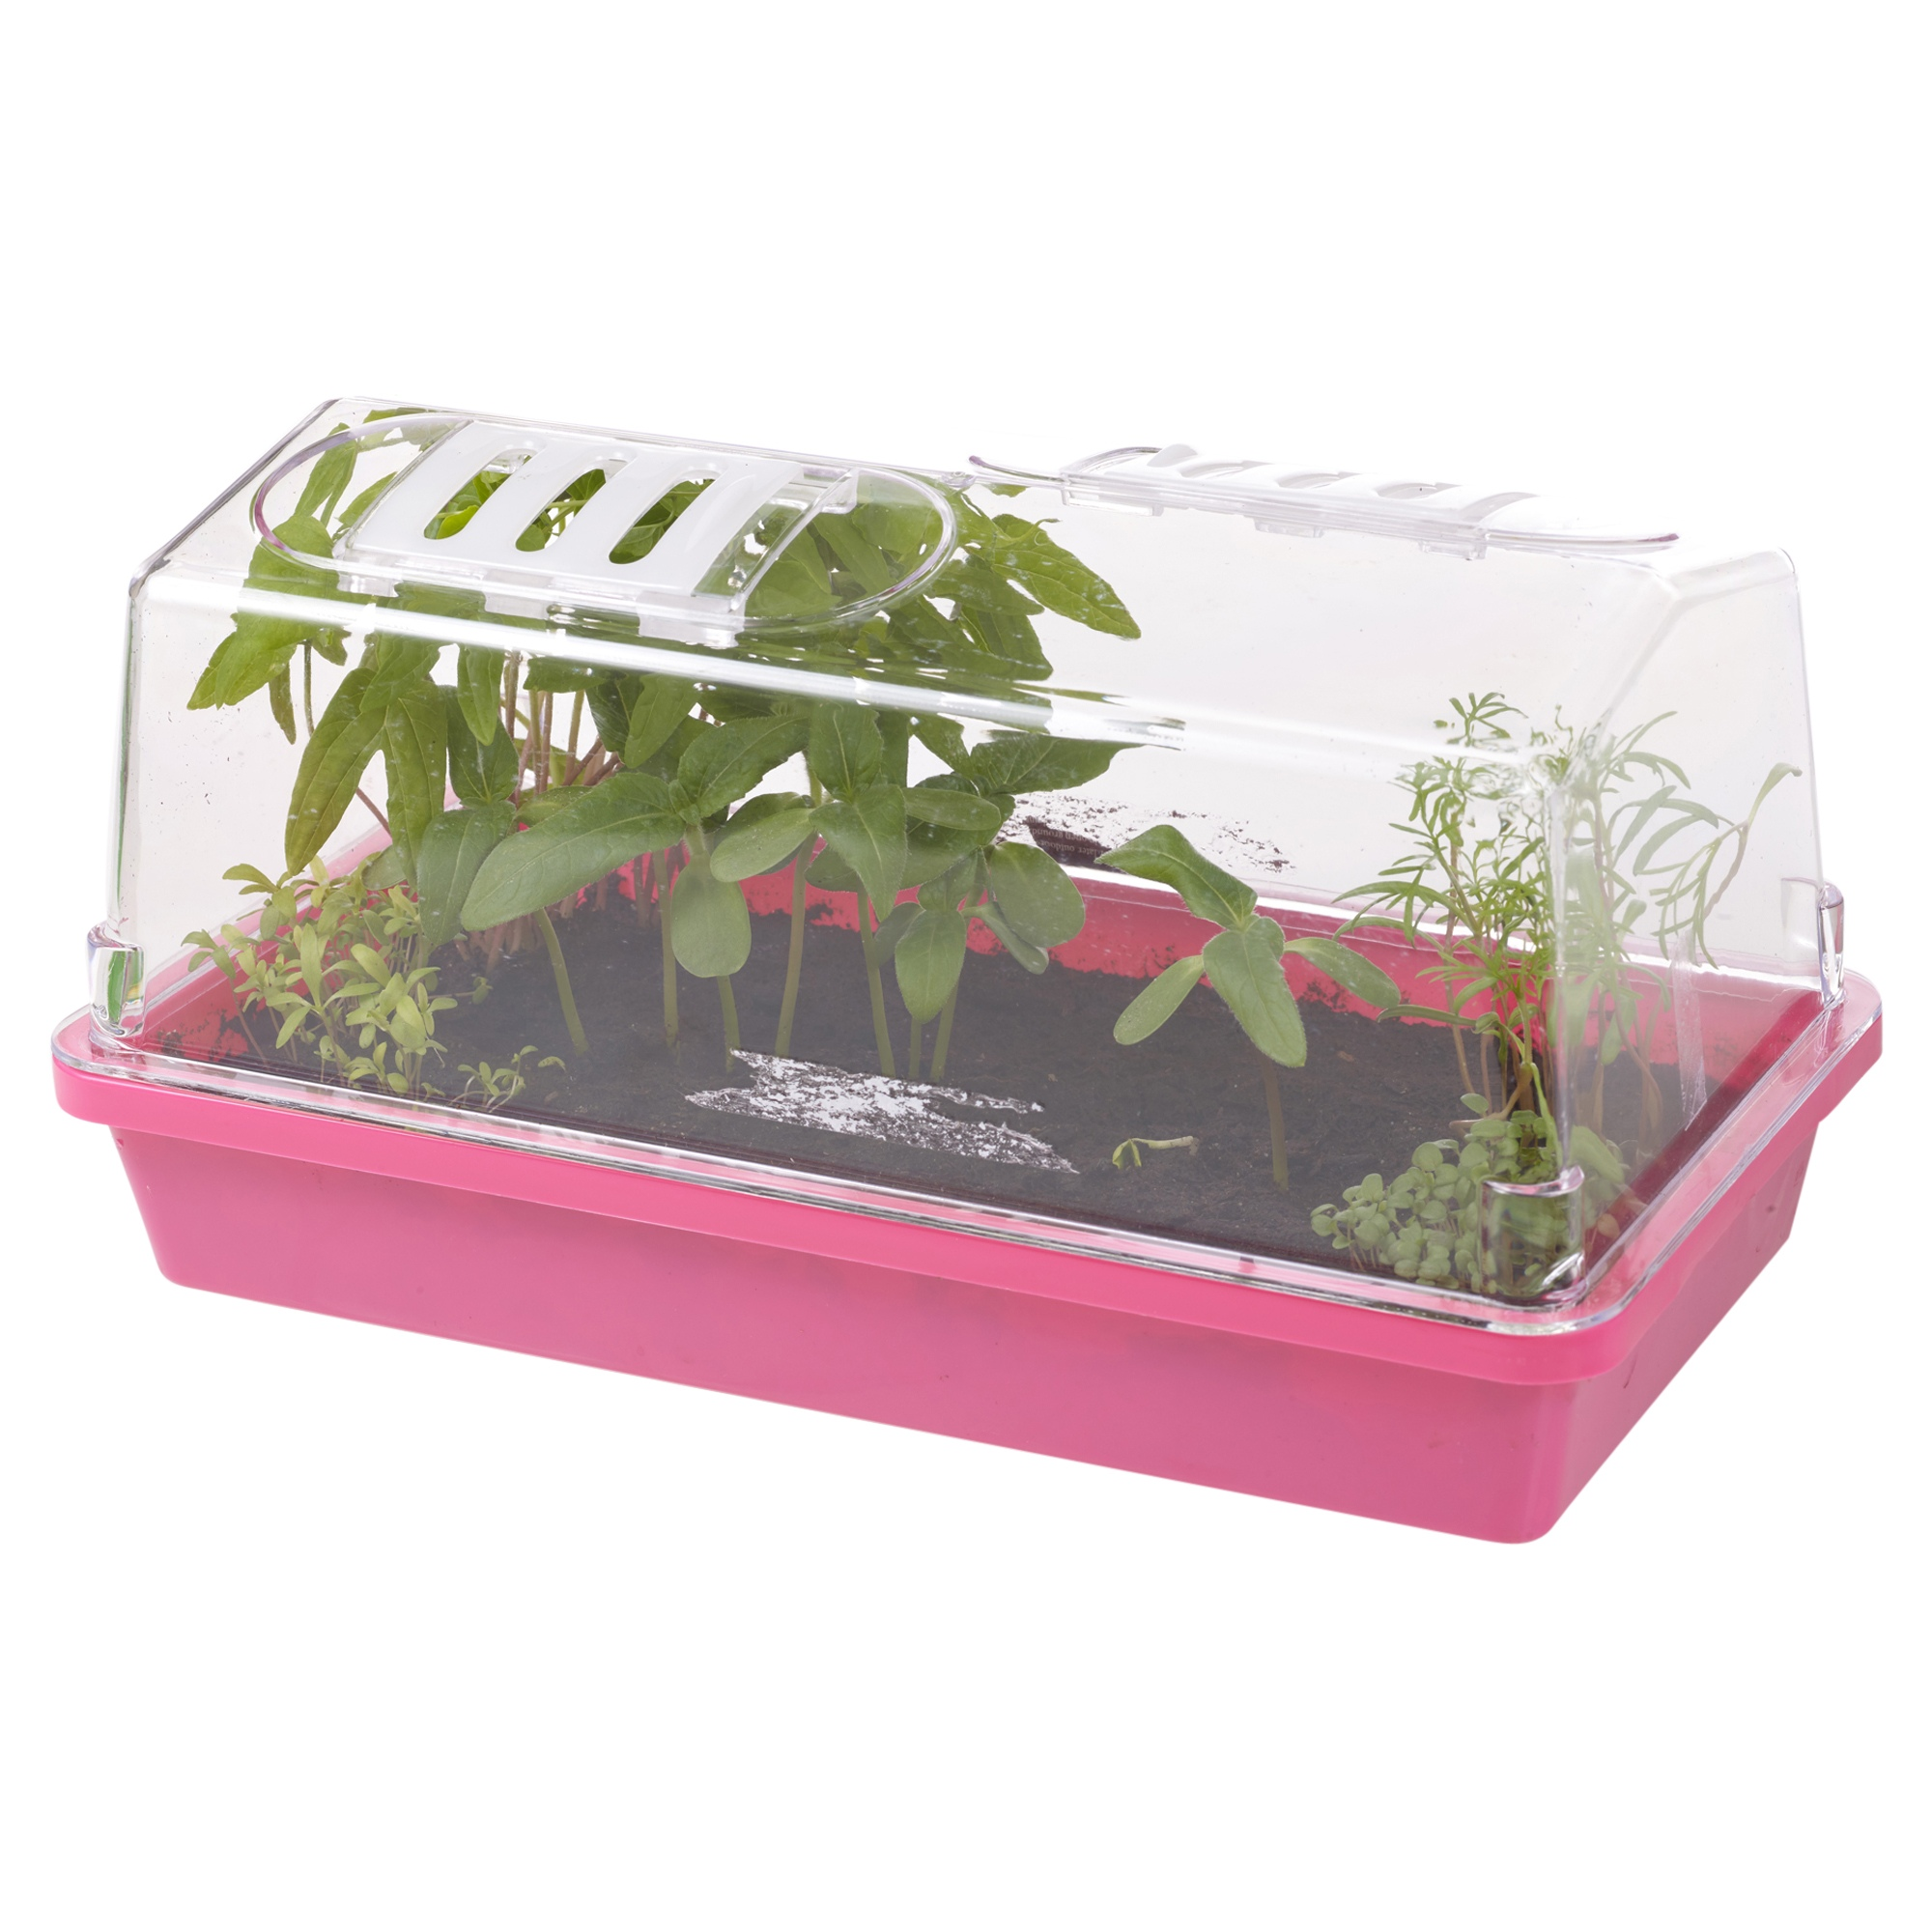 Indoor propagator home grow planter kit vegetables herbs for Portable vegetable garden